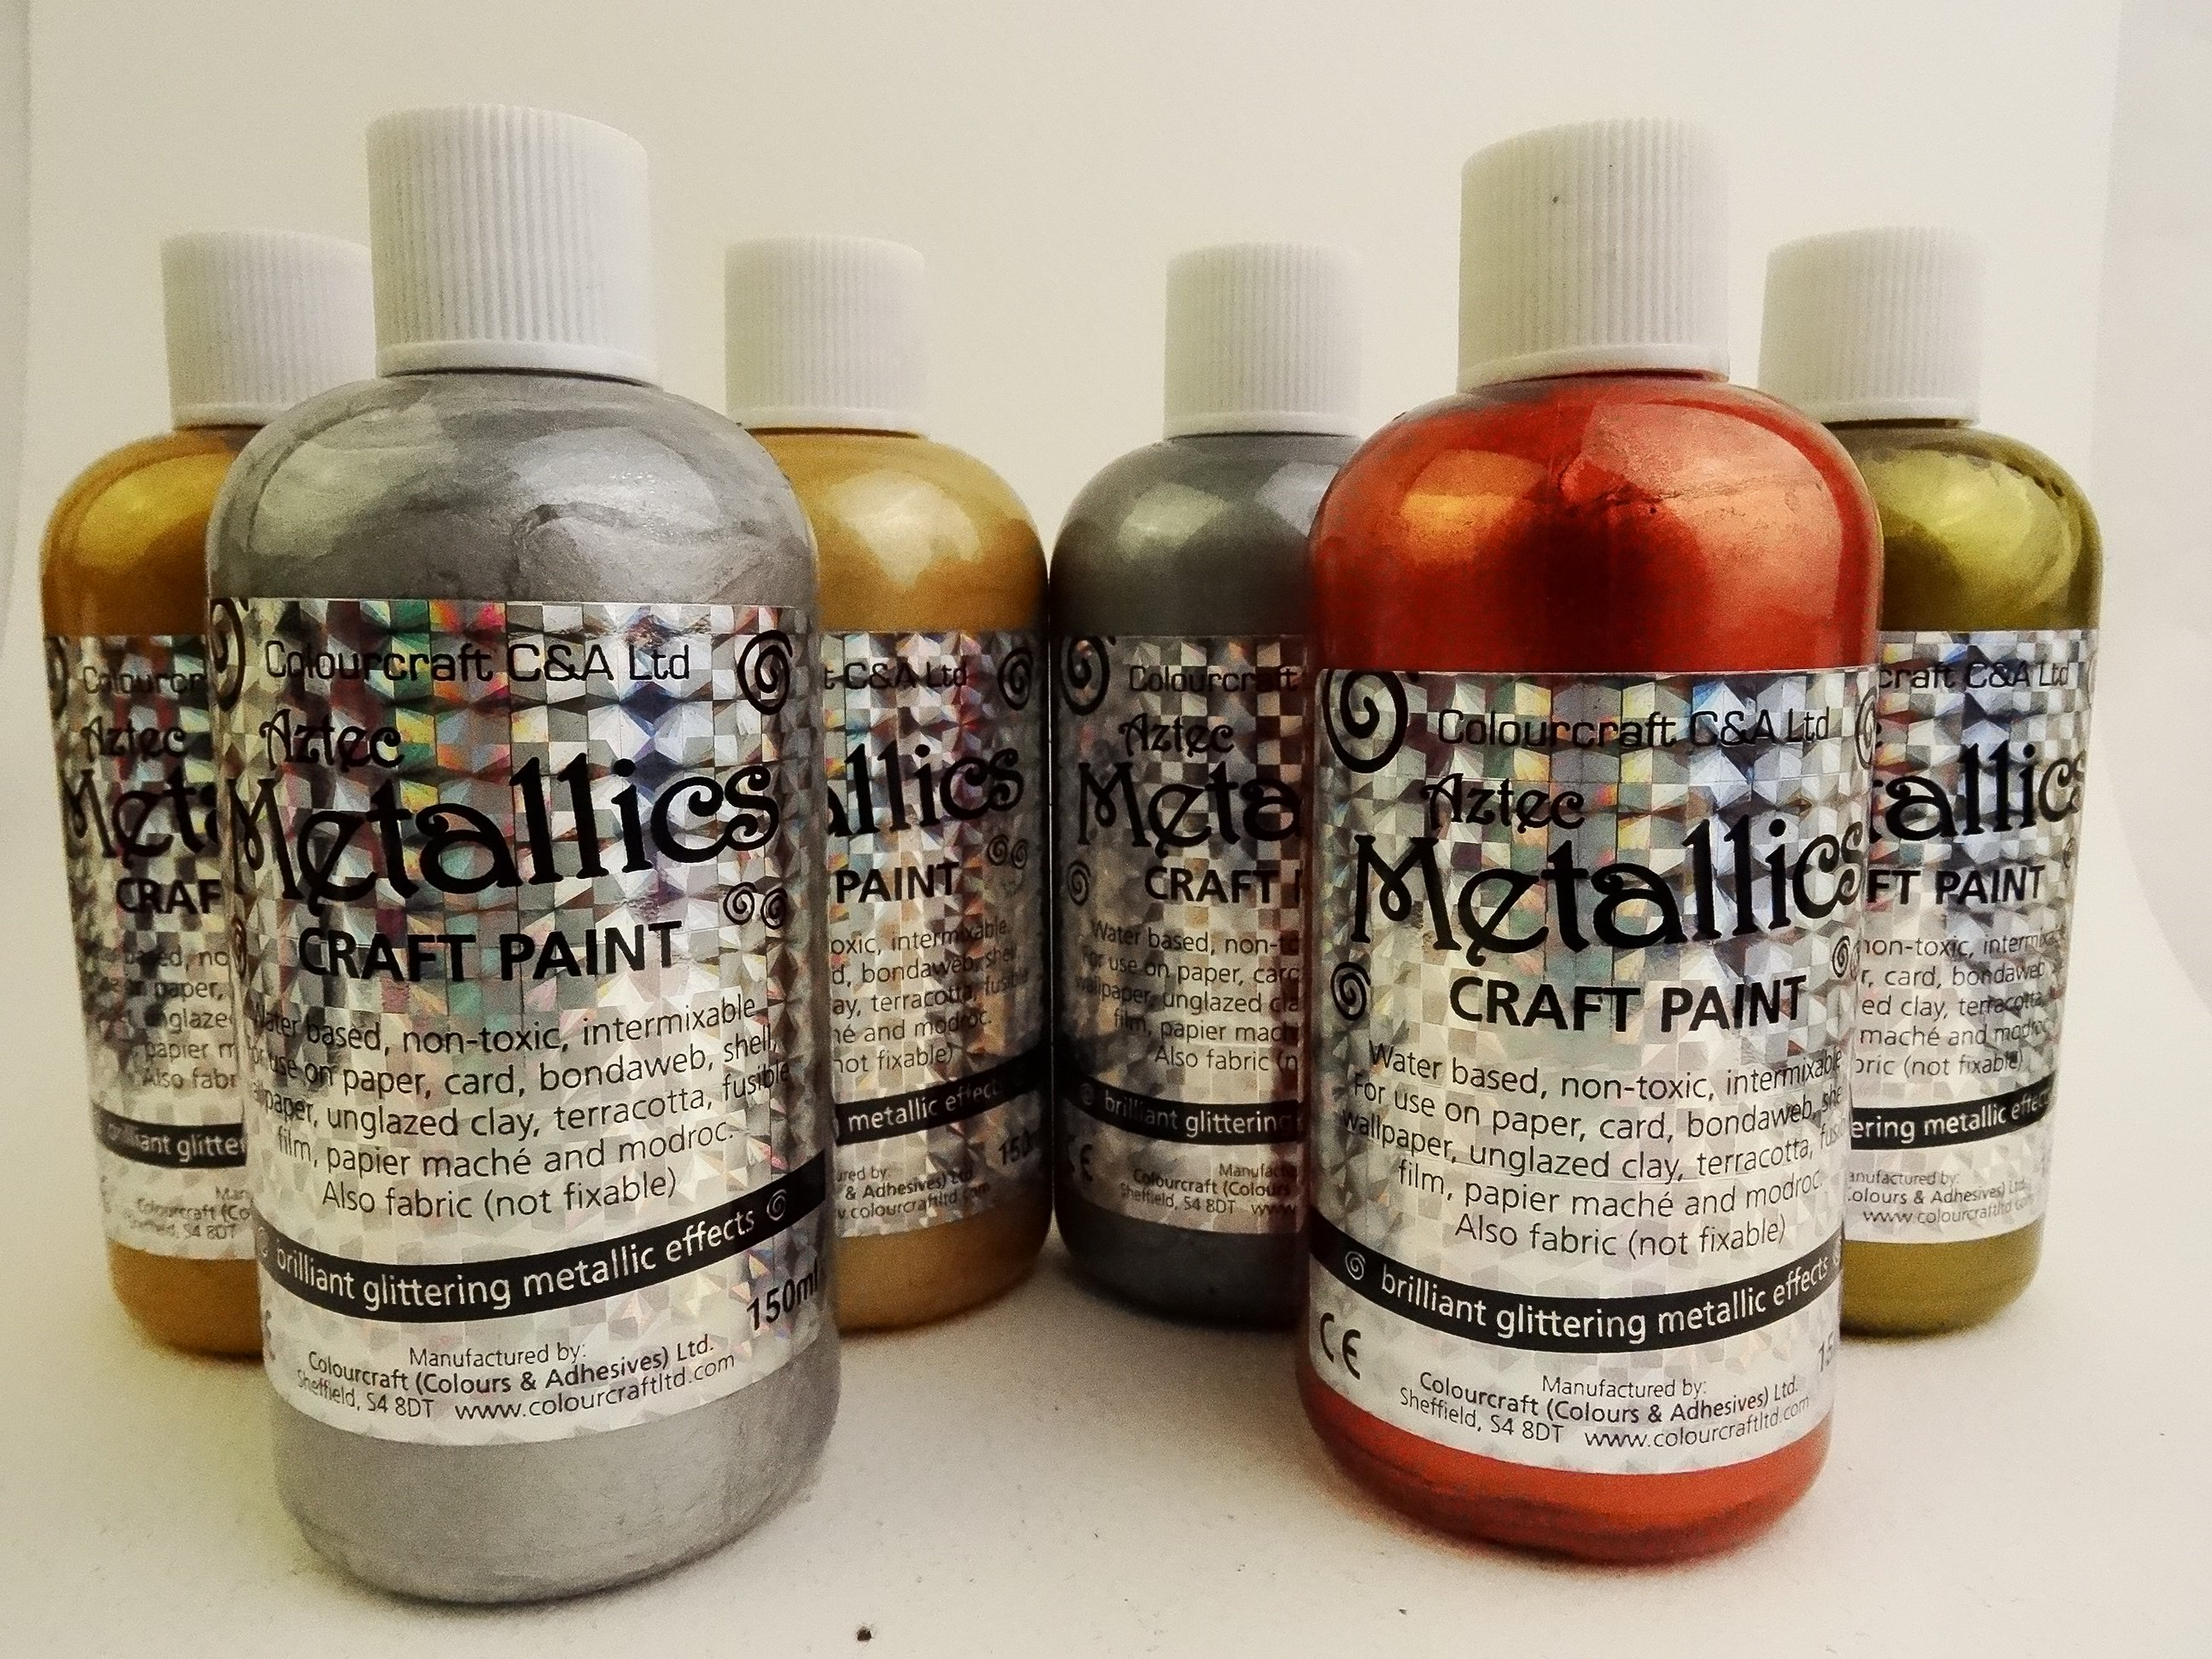 Aztec Eco Metallic Paint - Metallic Range